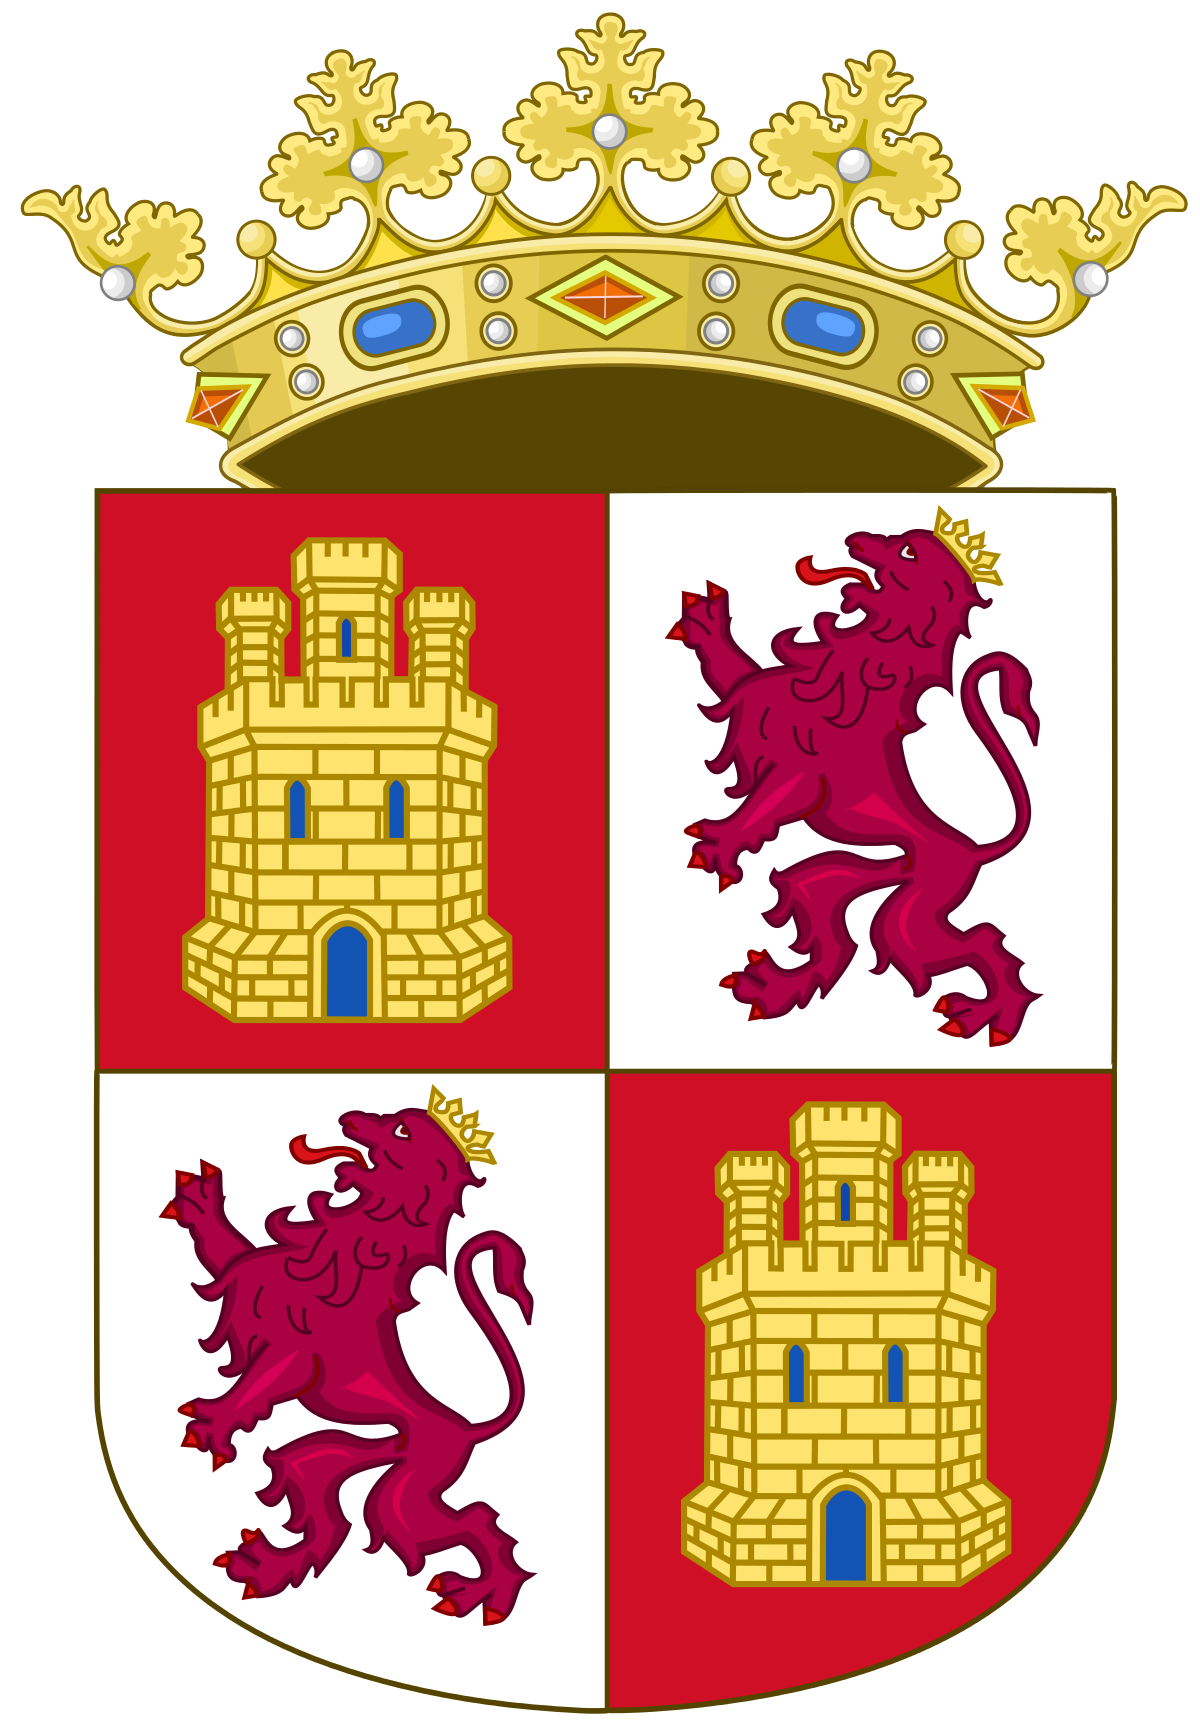 Coat of arms of Castile and León.